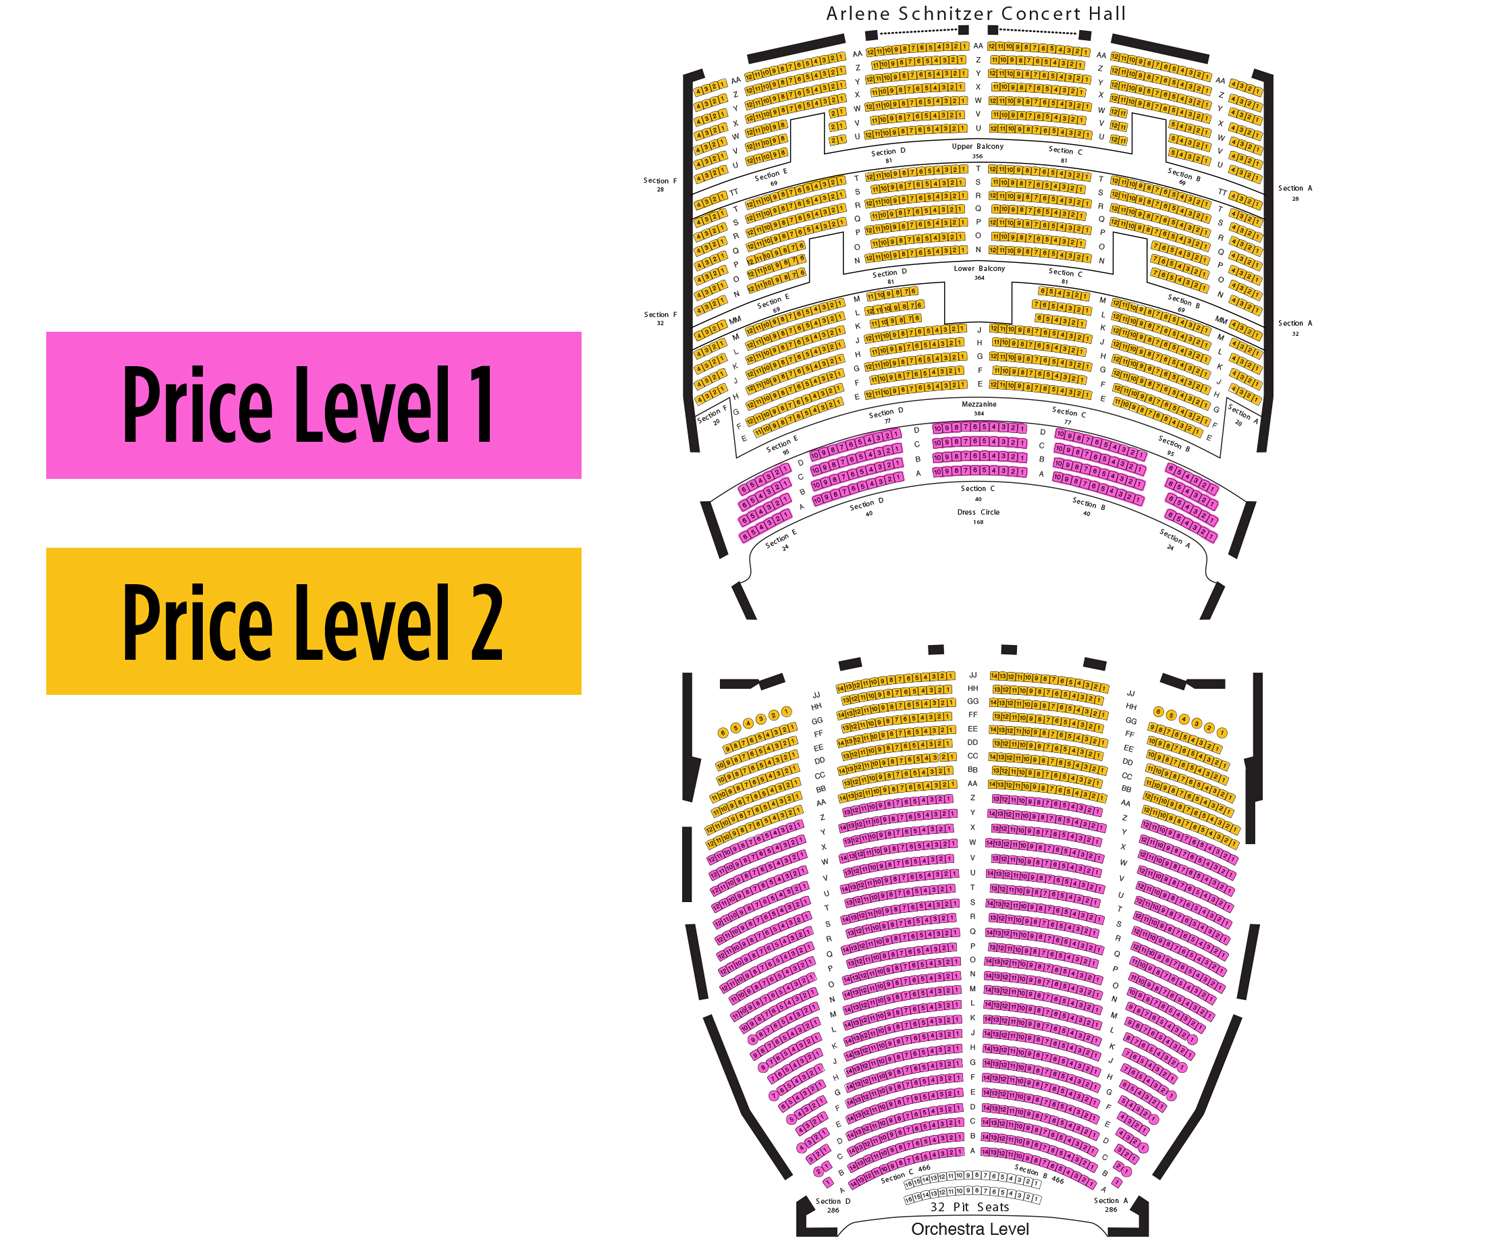 Schnitzer Concert Hall Seating Chart Kirmiyellowriverwebsitescom - Arlene schnitzer seating chart